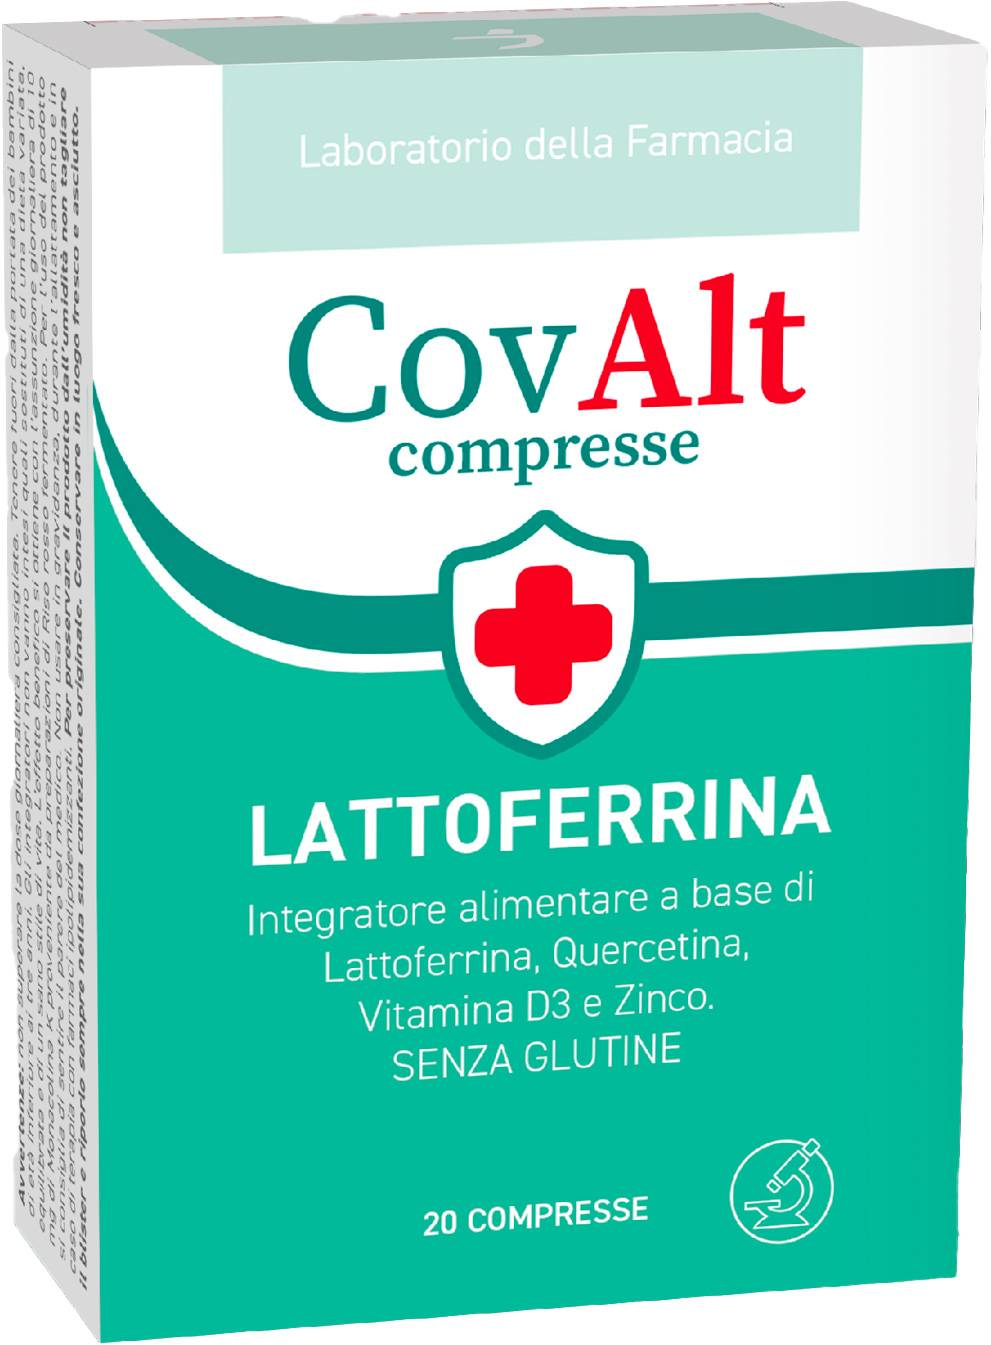 LDF COVALT  LATTOFERRINA 20 CPR